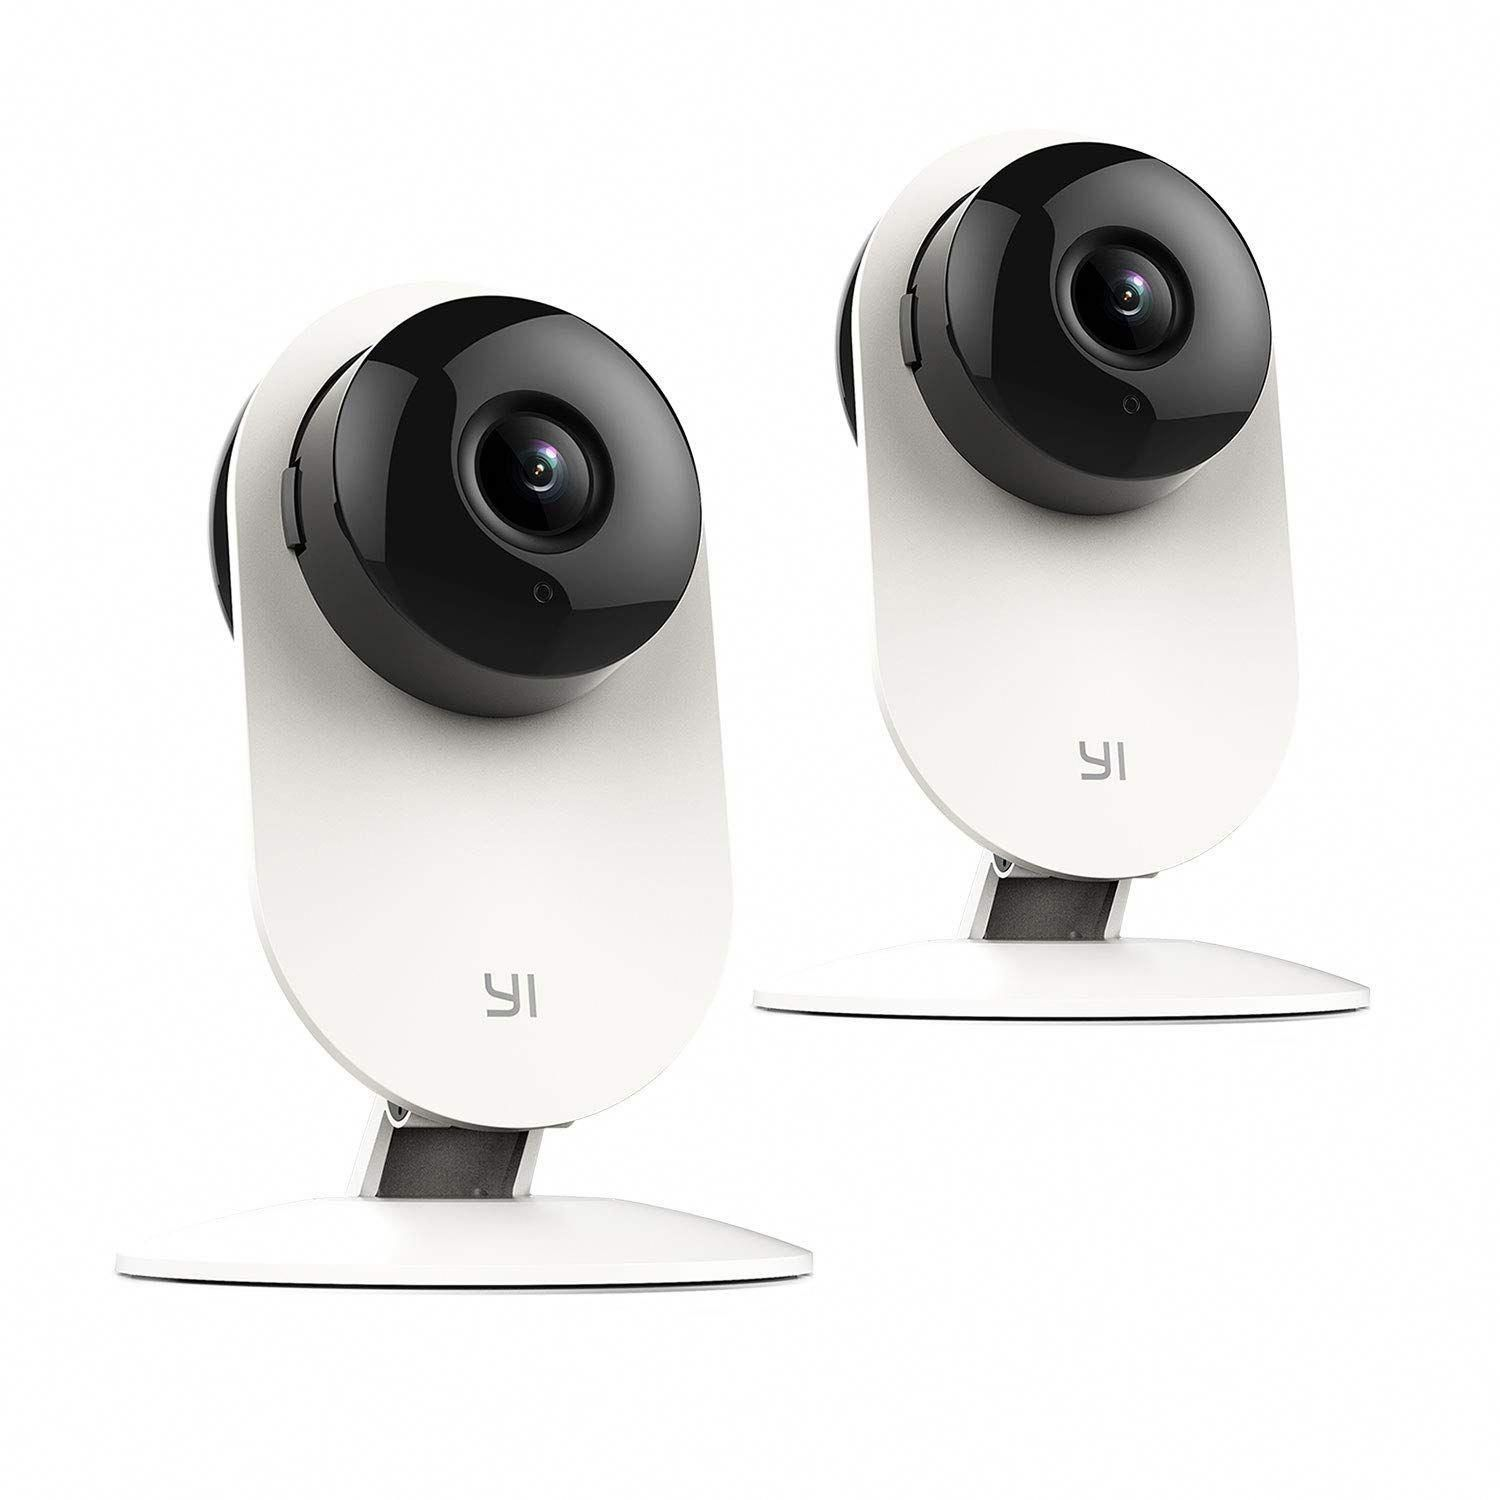 Pin By Dh W On Smart Camera Security Cameras For Home Wireless Home Security Systems Wireless Security System